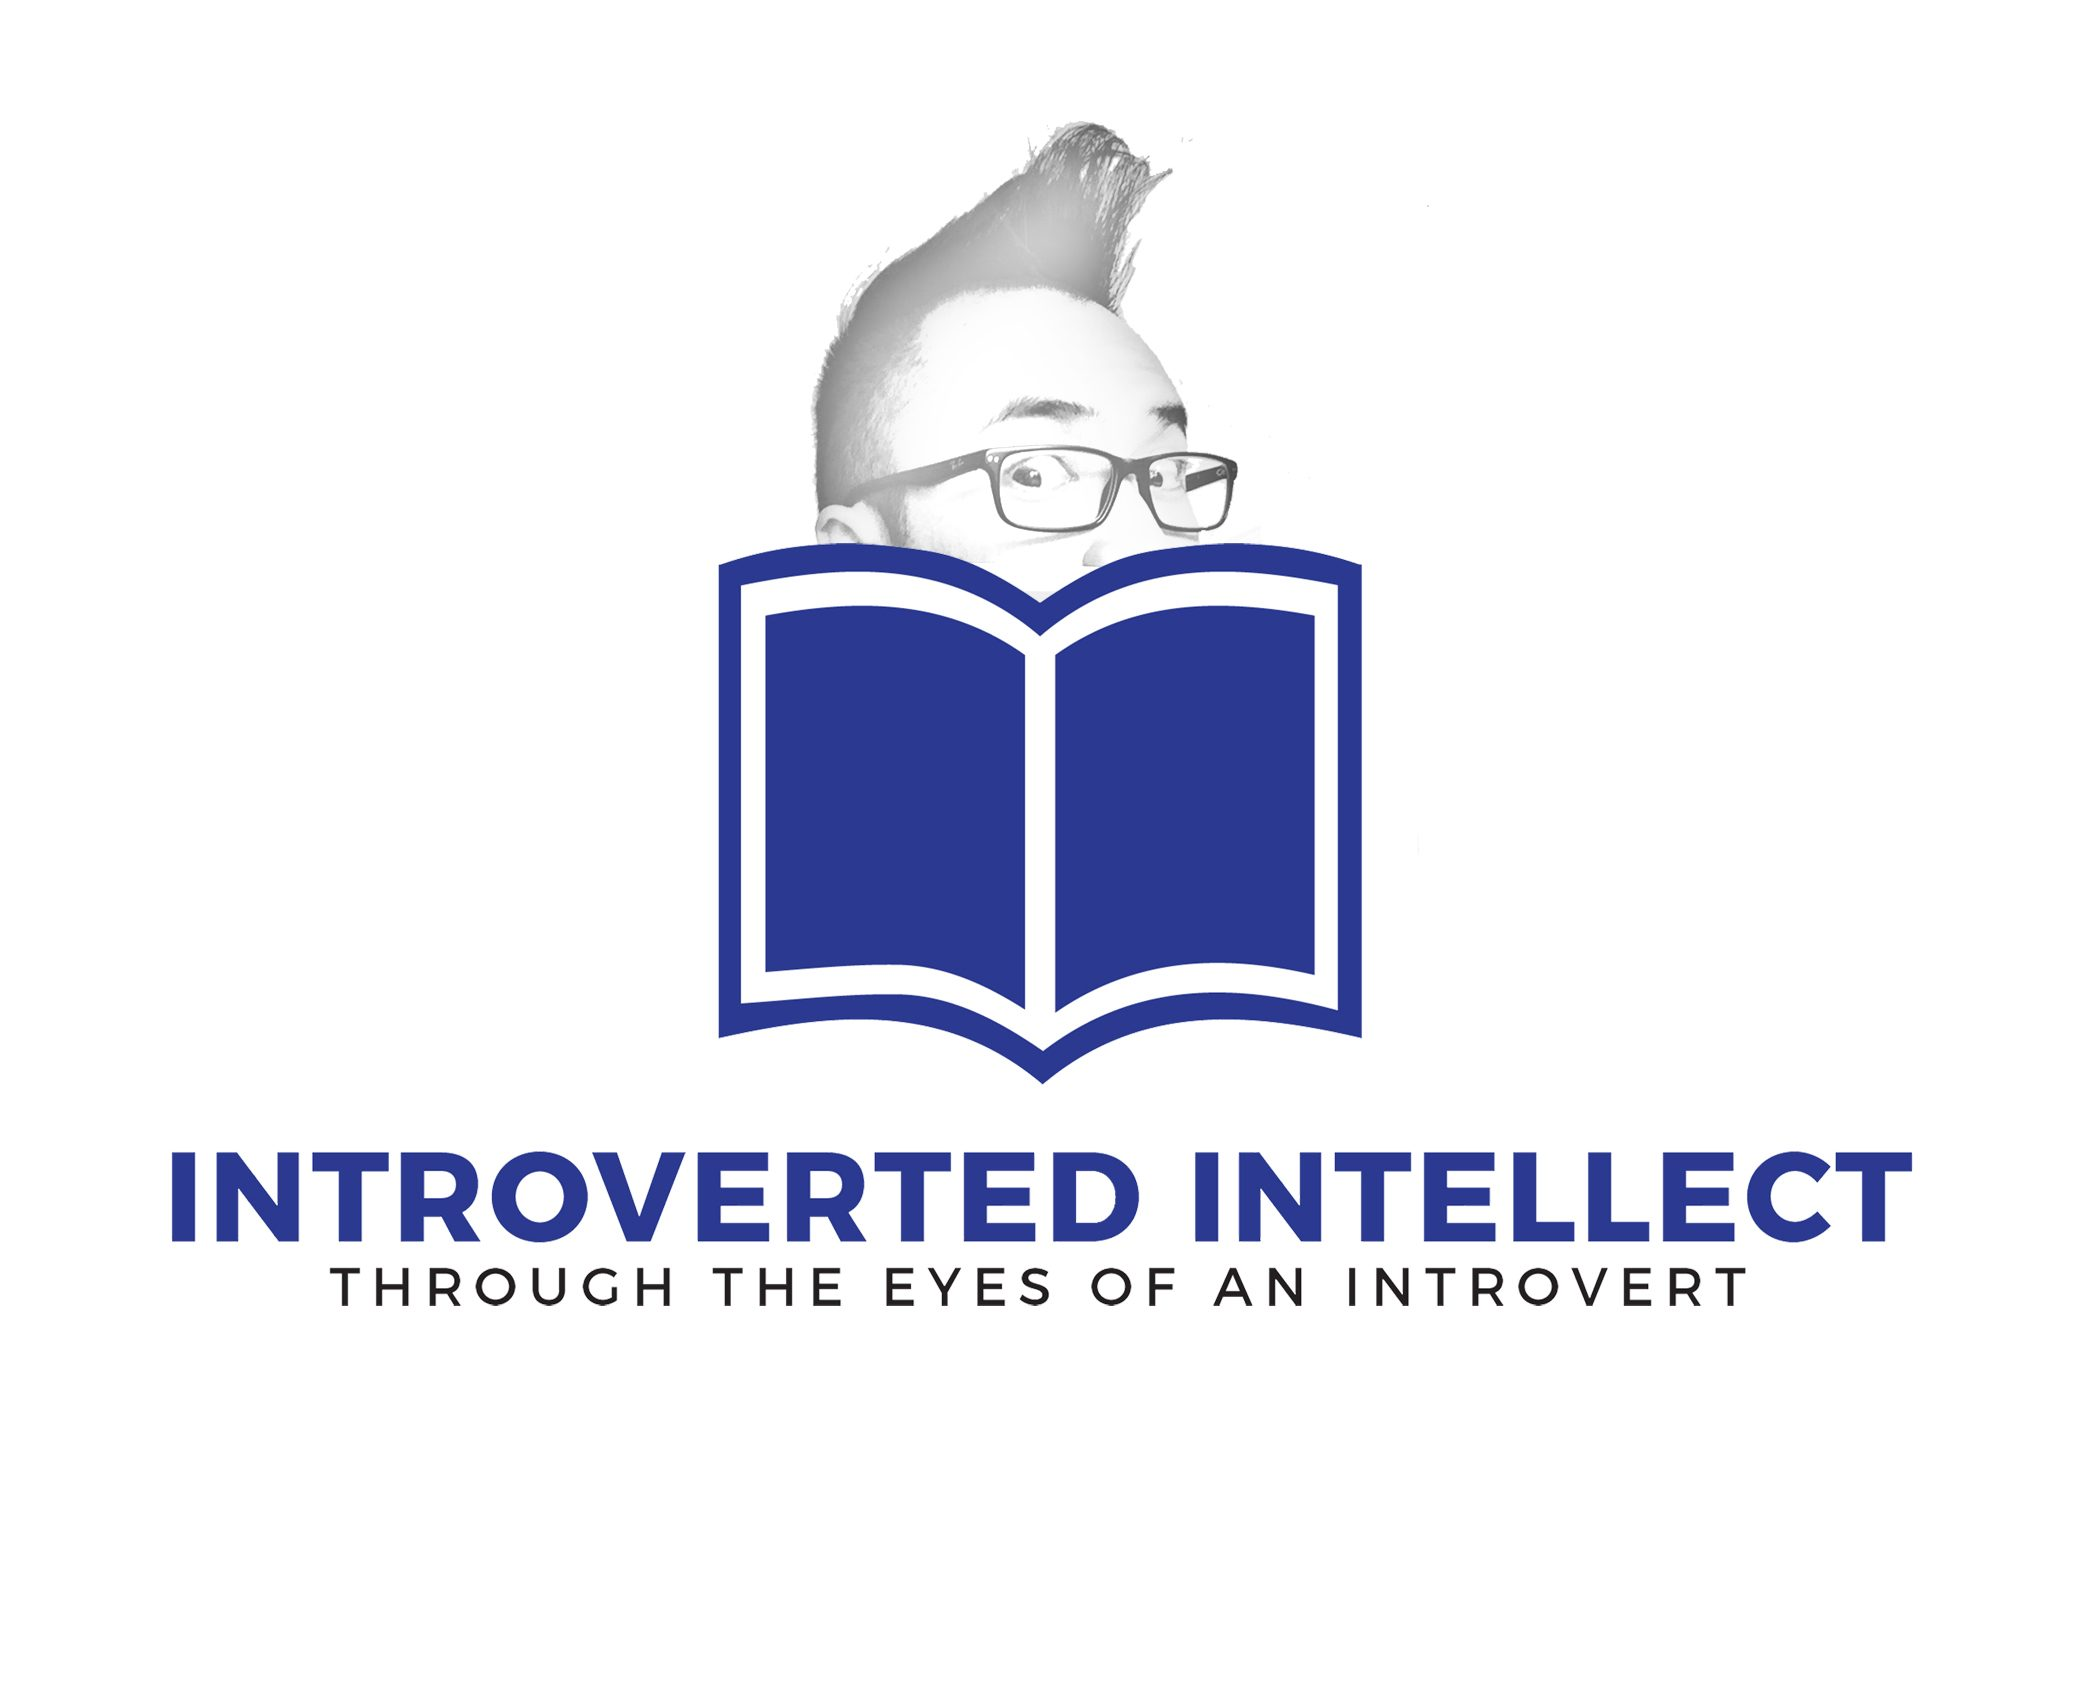 Introverted Intellect